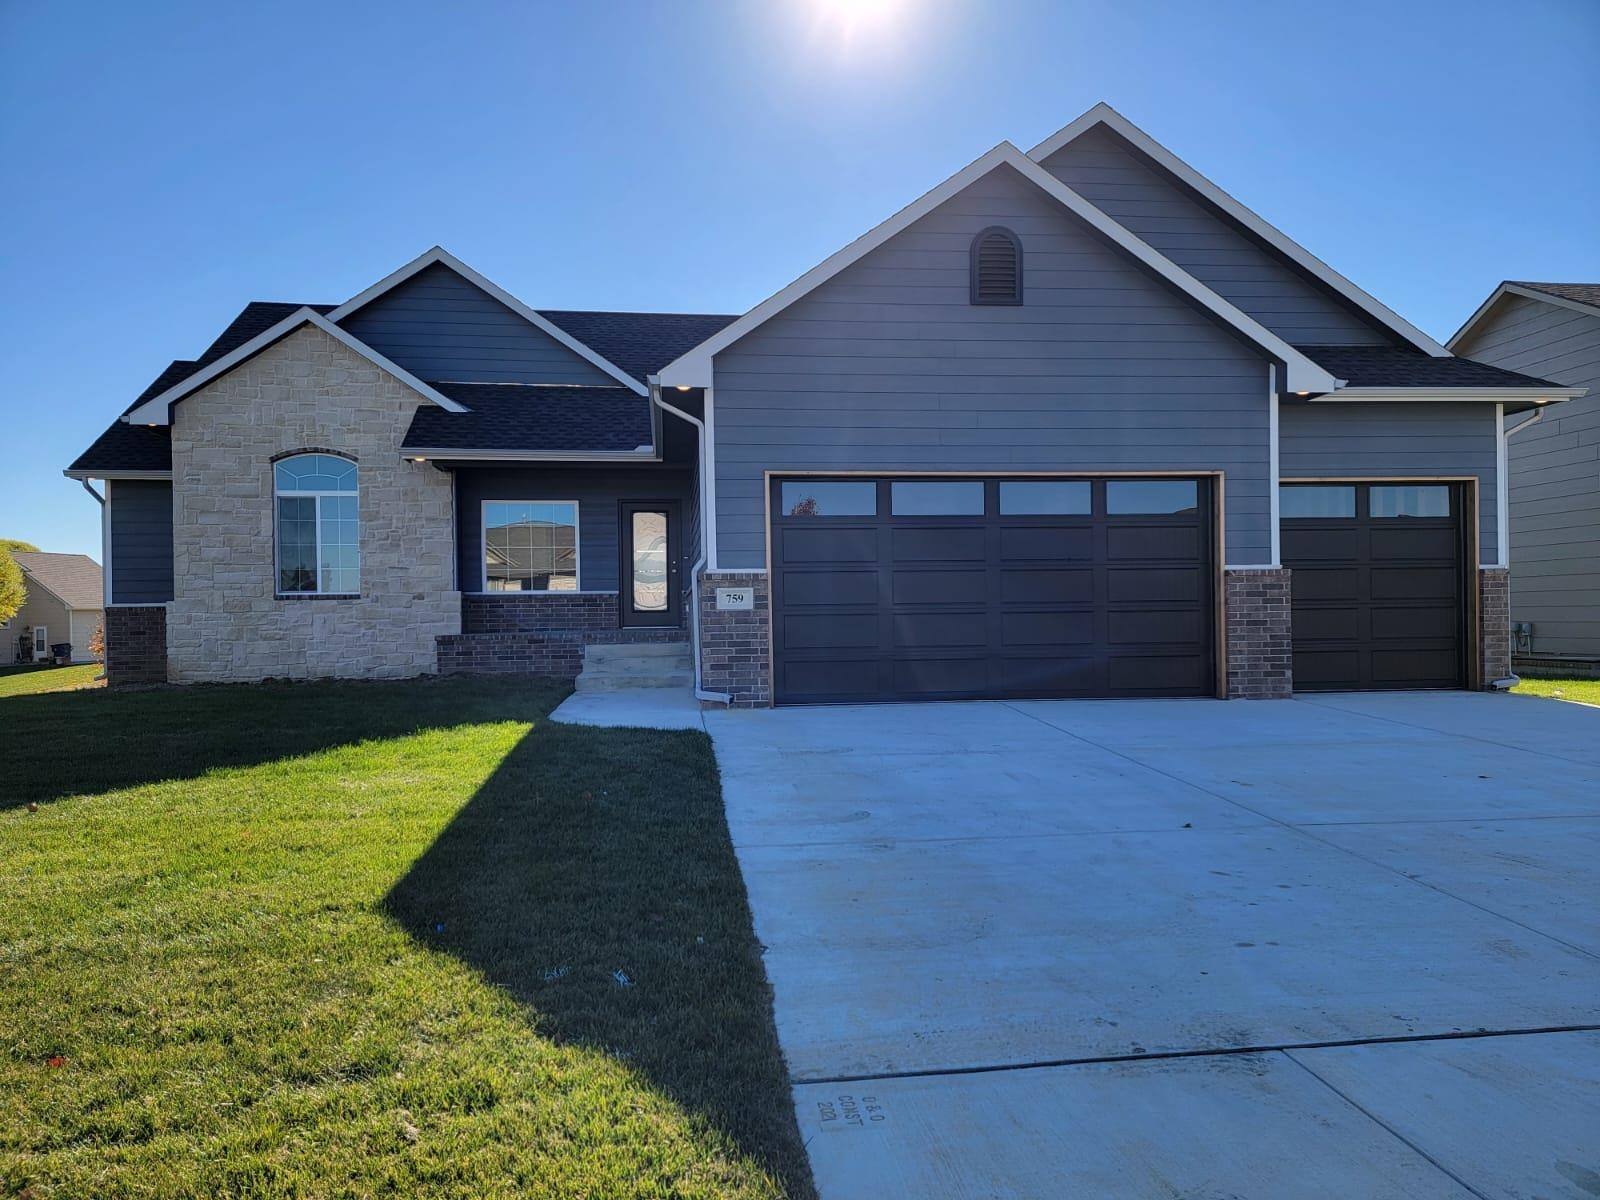 Brand new home 3000 square feet with 5 bedrooms 3 bathrooms 3 car attached garage and full finished